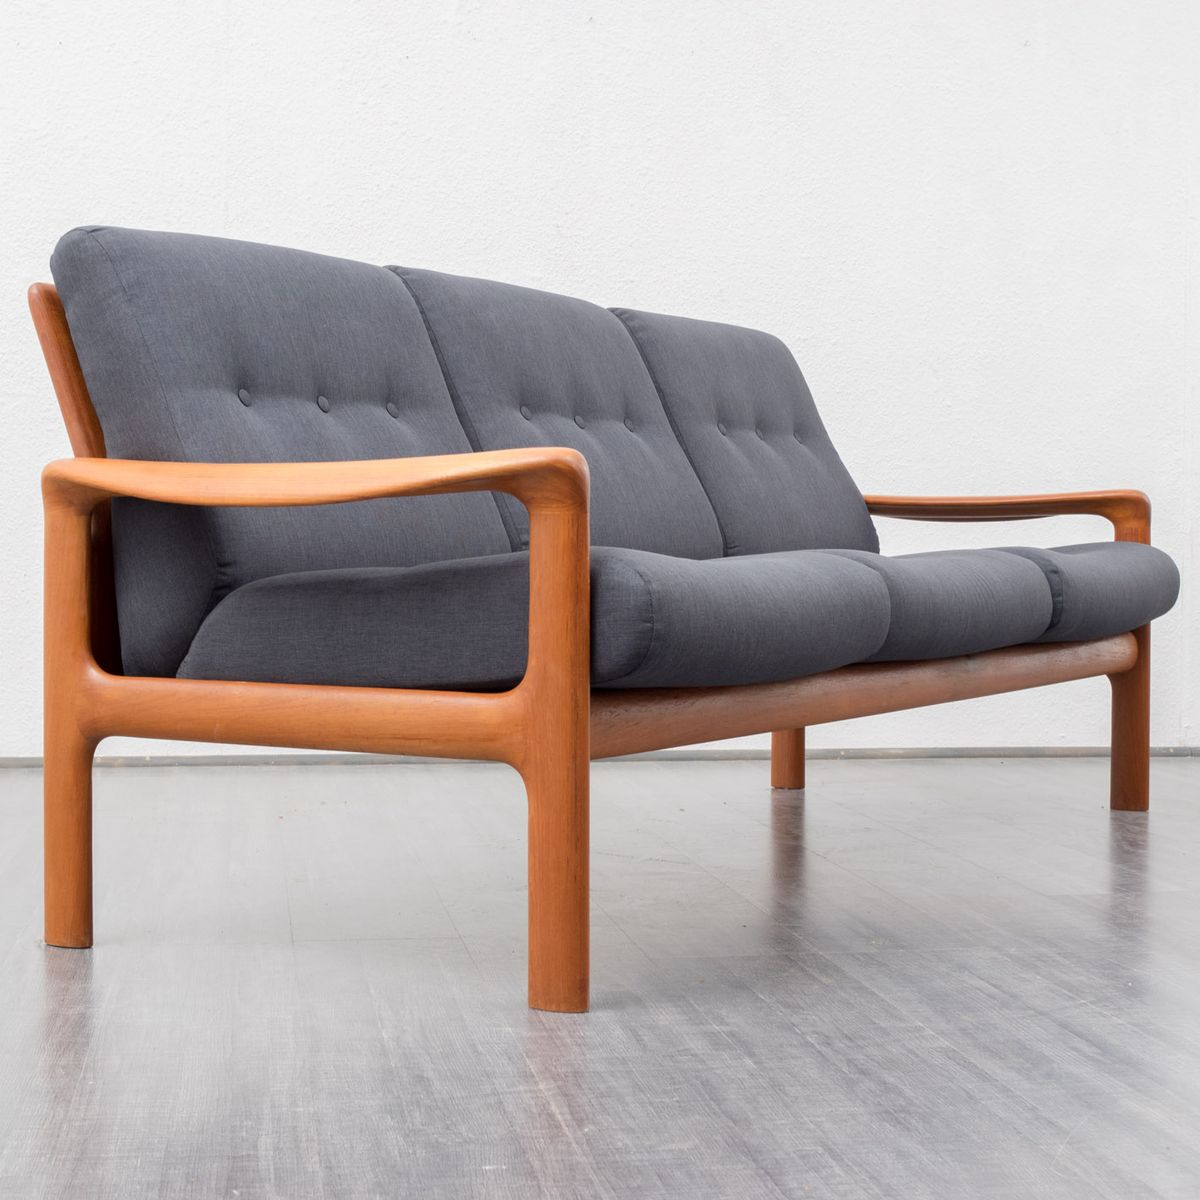 Teak and anthracite fabric sofa from comfort 1960s for sale at pamono - Sofa antraciet ...